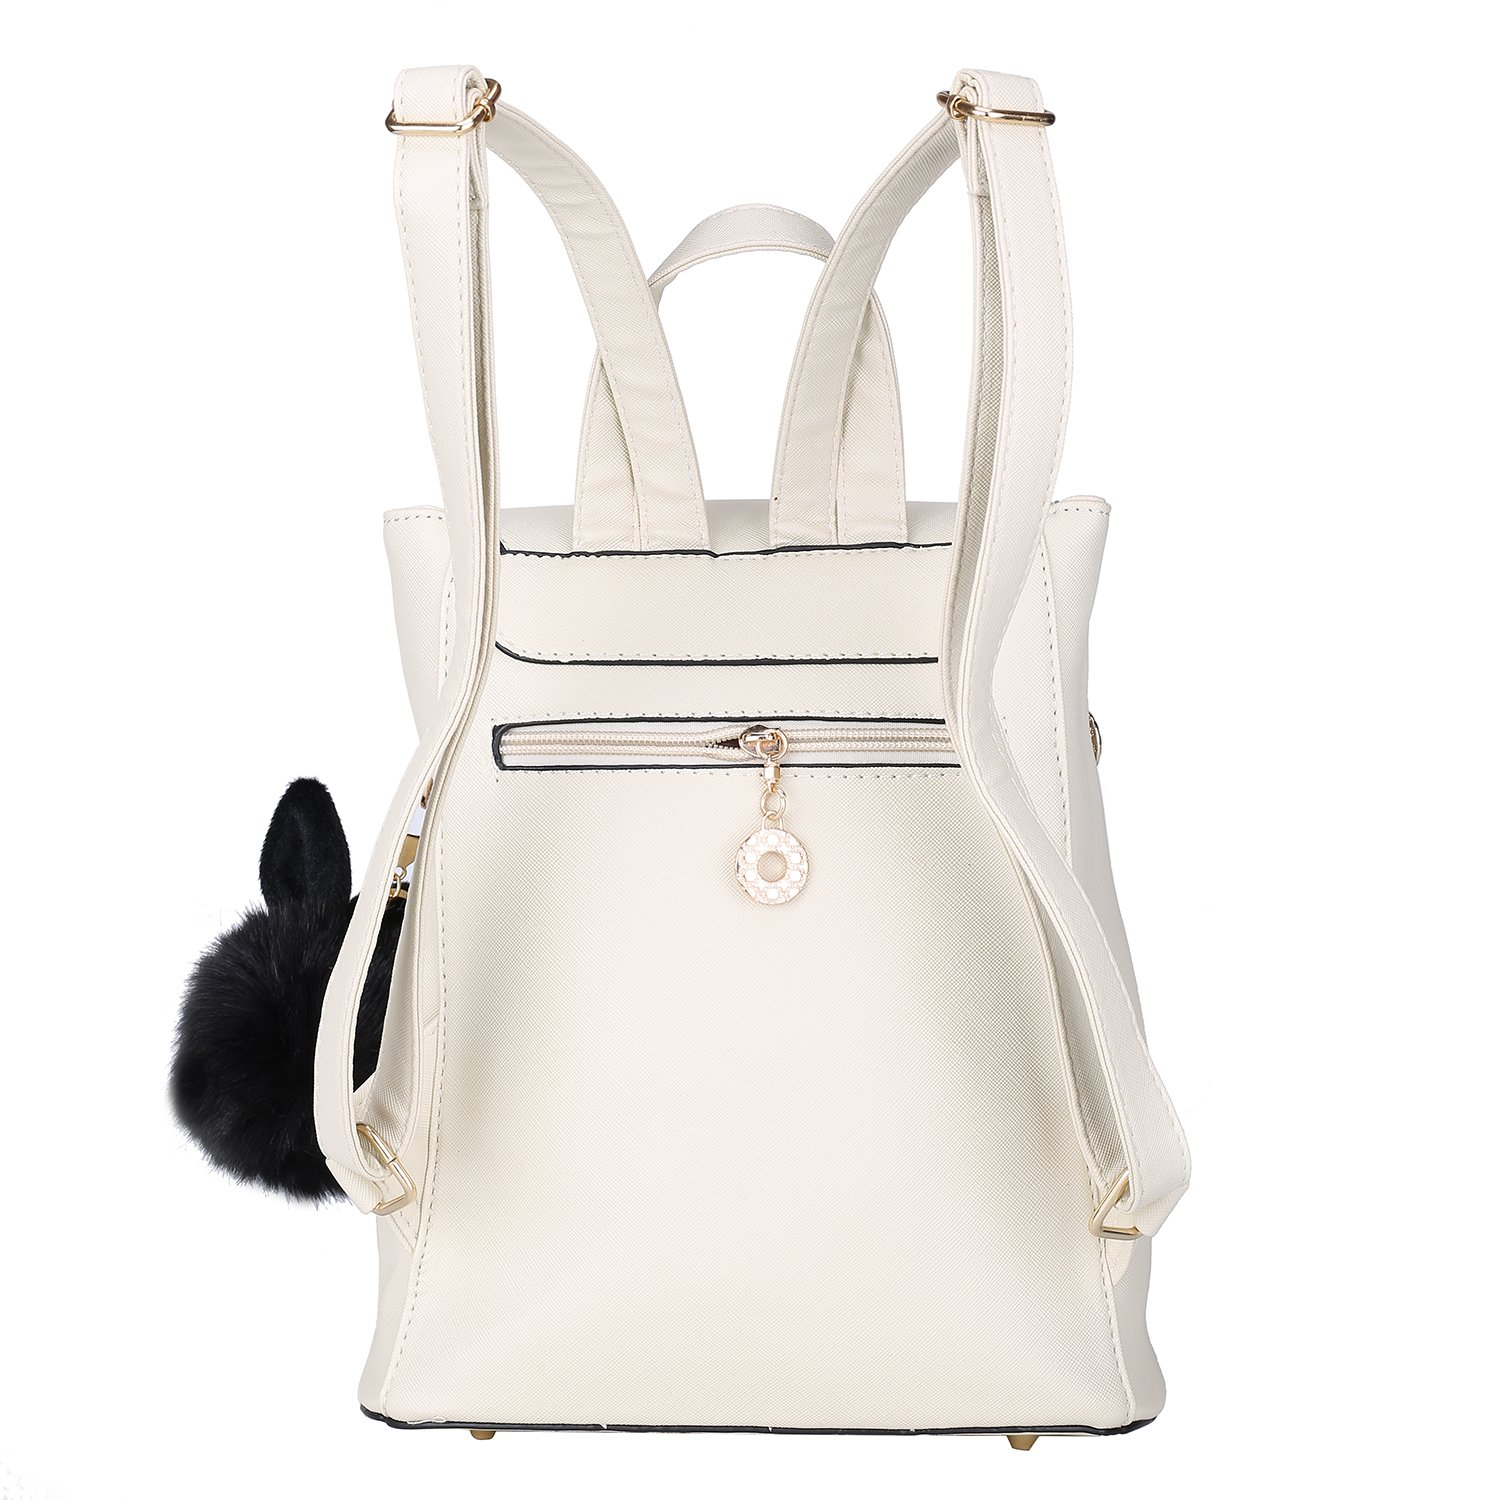 Leather Backpack for Women With Pom-Pom Girls Mini Casual daypack Backpack Purse (Ivory) by KOVI (Image #2)